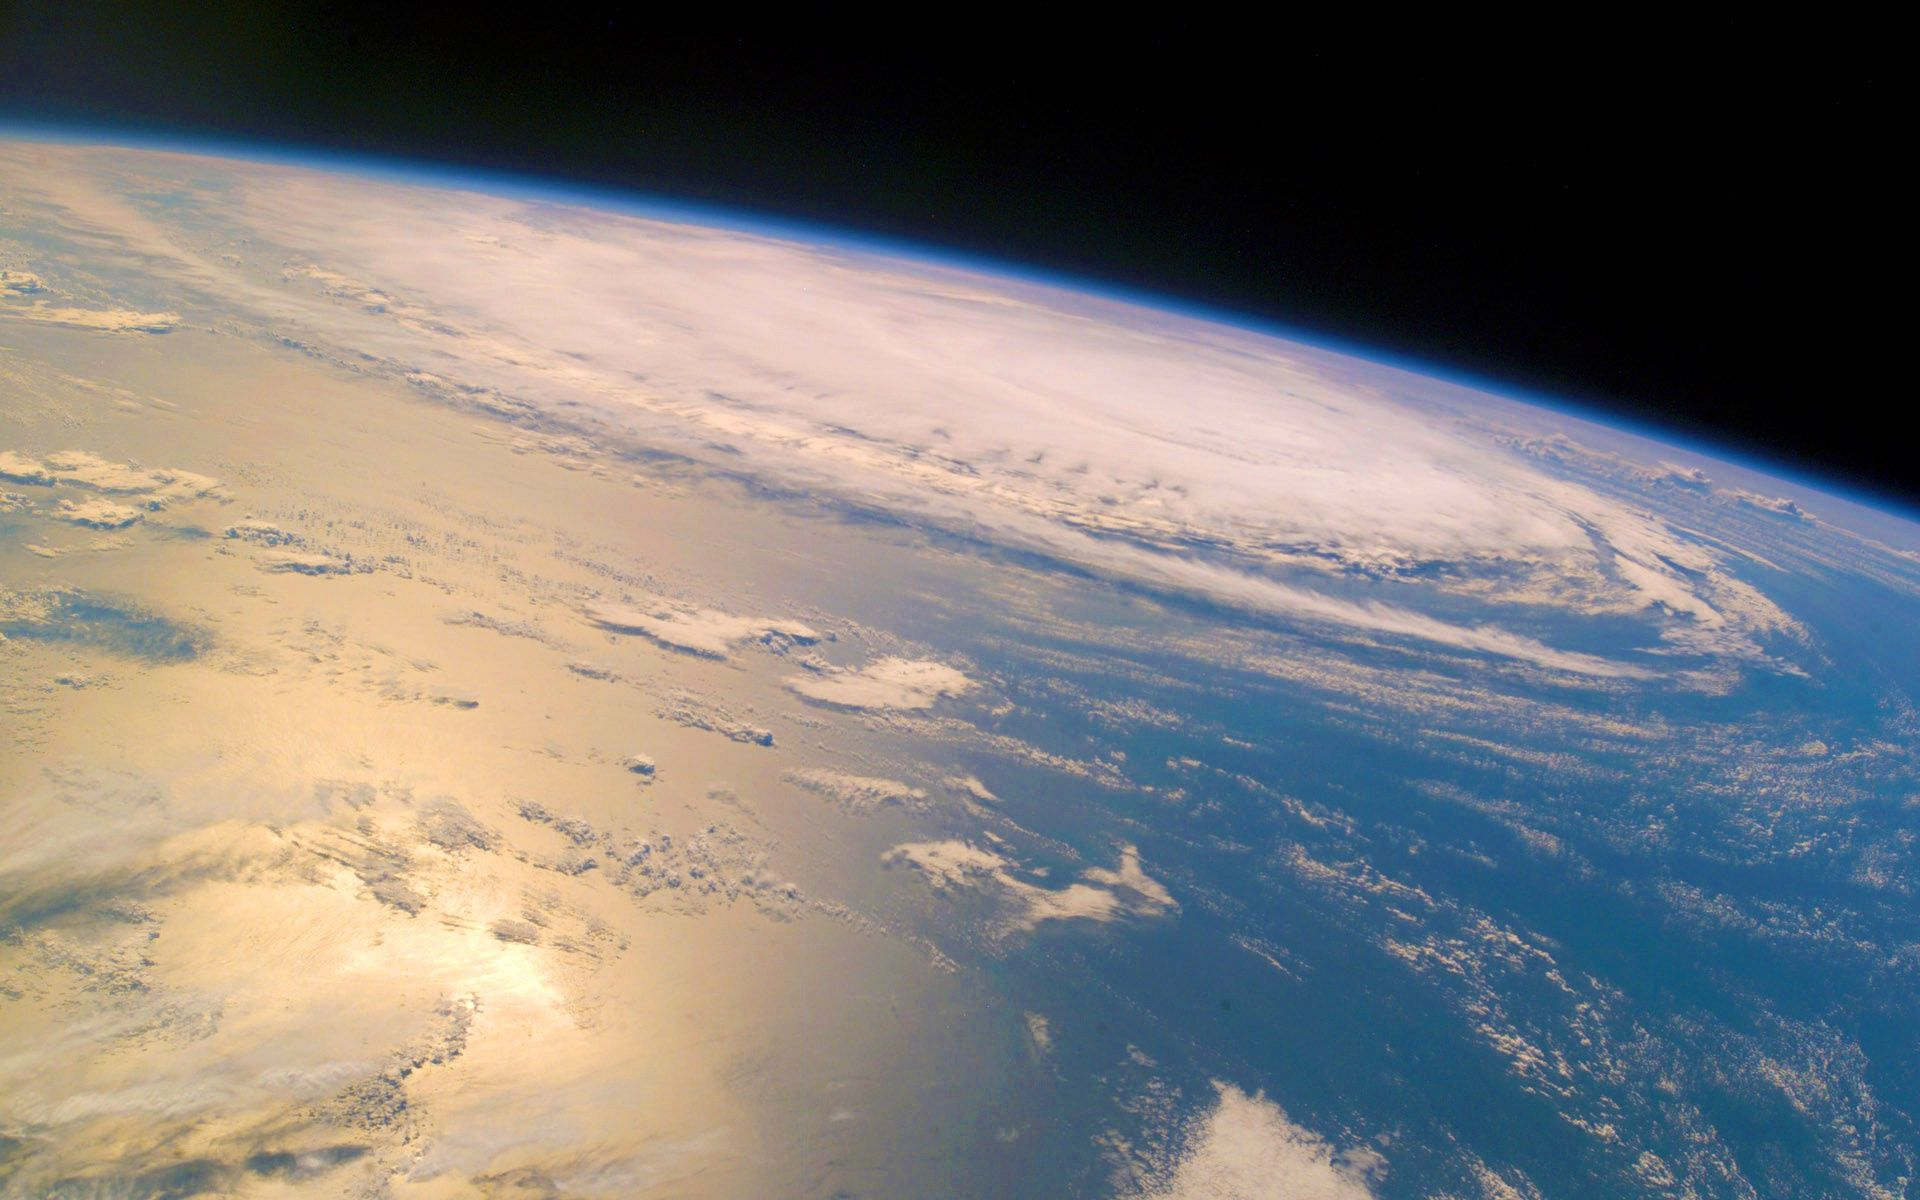 Top Wallpaper High Quality Space - Pictures-Of-Earth-From-Space-Wallpapers-036  Pictures_453923.jpg